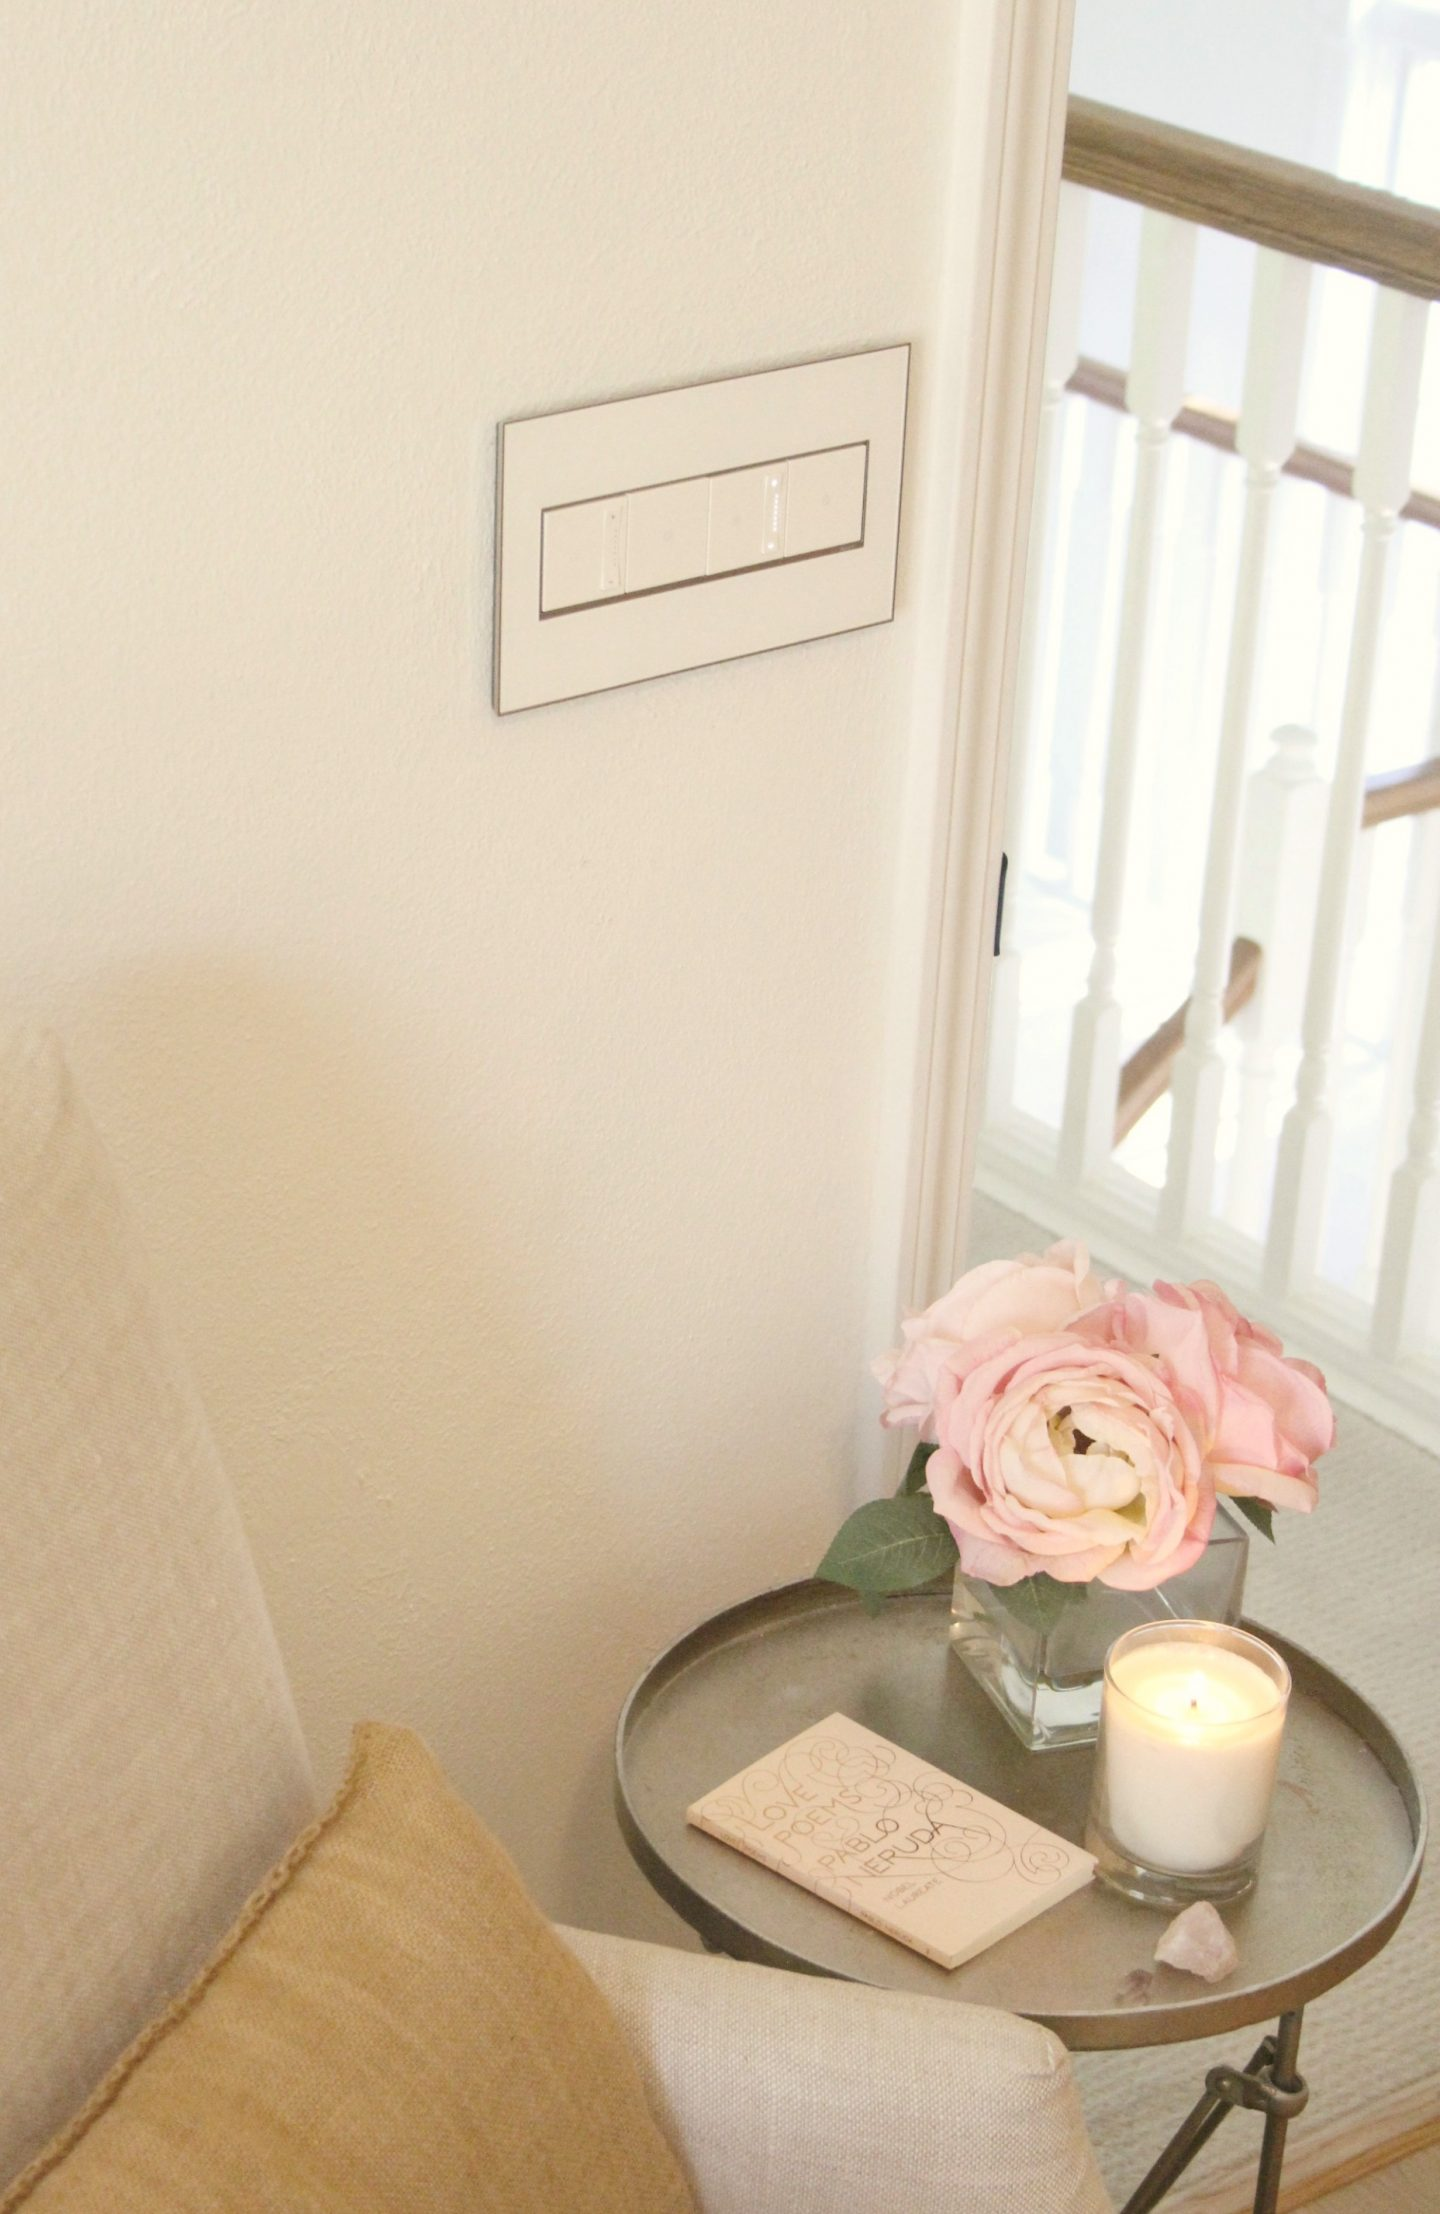 Beautiful adorne light switches, dimmers, and wall plate - Hello Lovely Studio